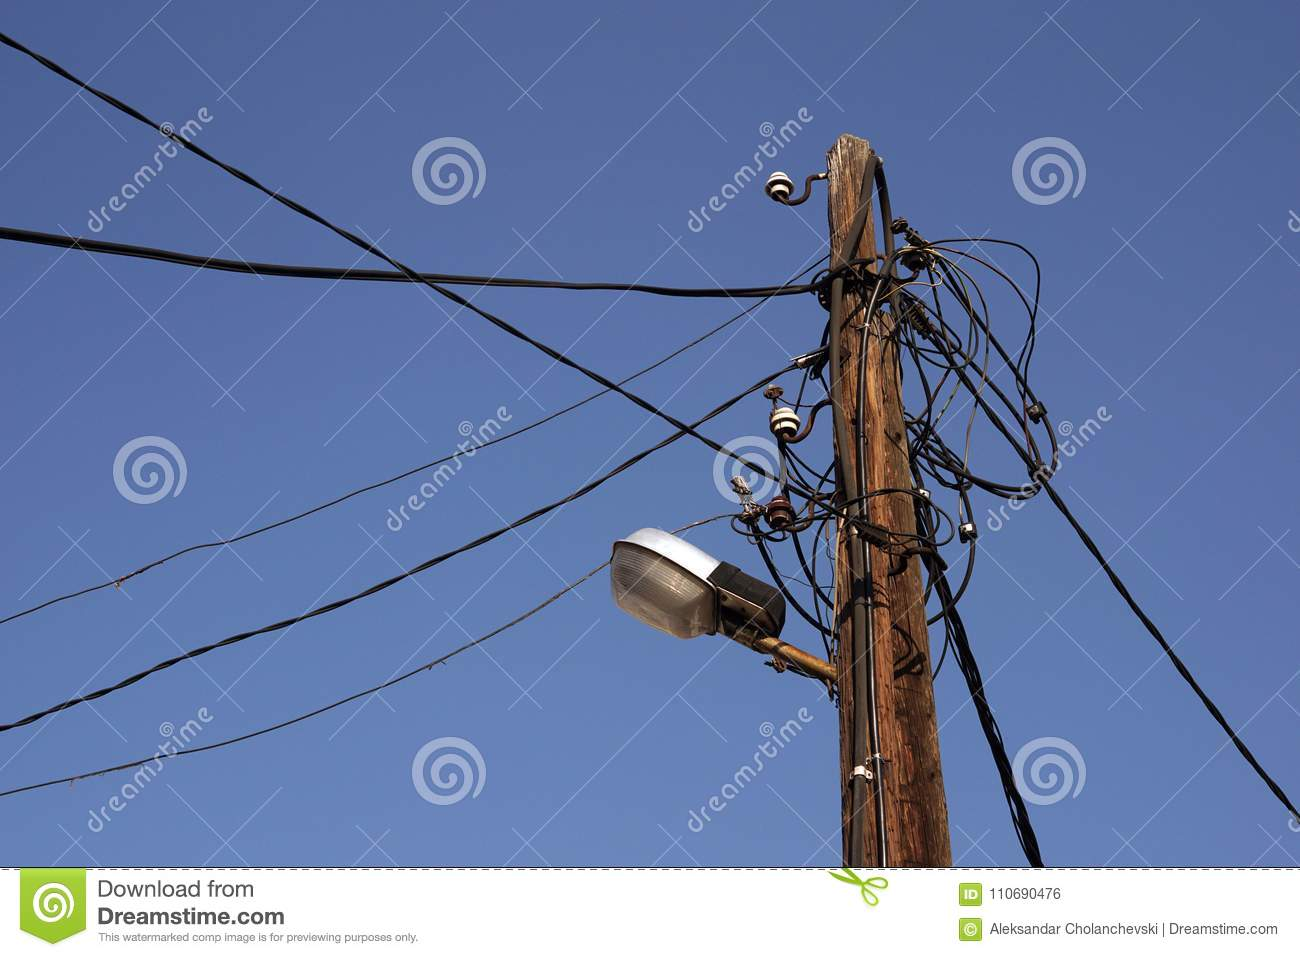 Old Wooden Telegraph Pole Stock Photo Image Of Background 110690476 Wiring A Lamp With Street Closeup On Blue Sky